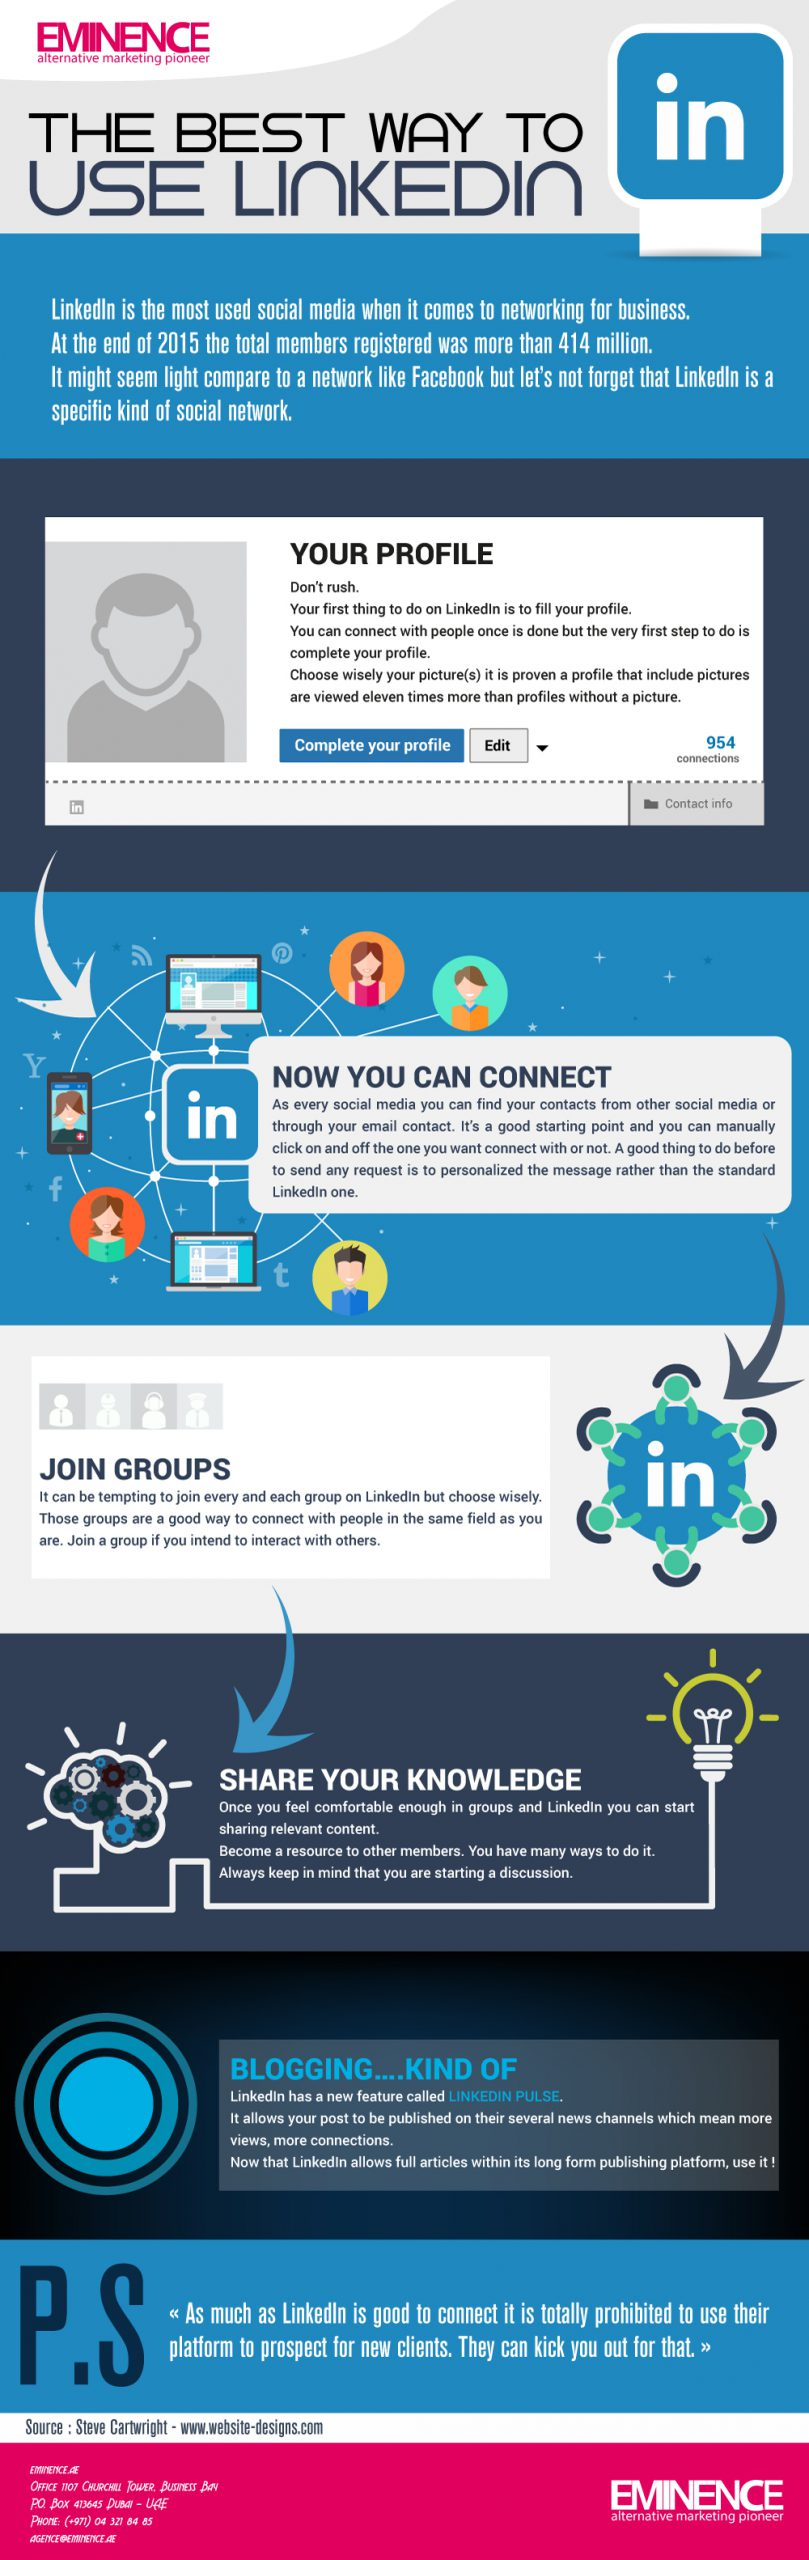 The-best-way-to-use-LinkedIn-infographie-#5